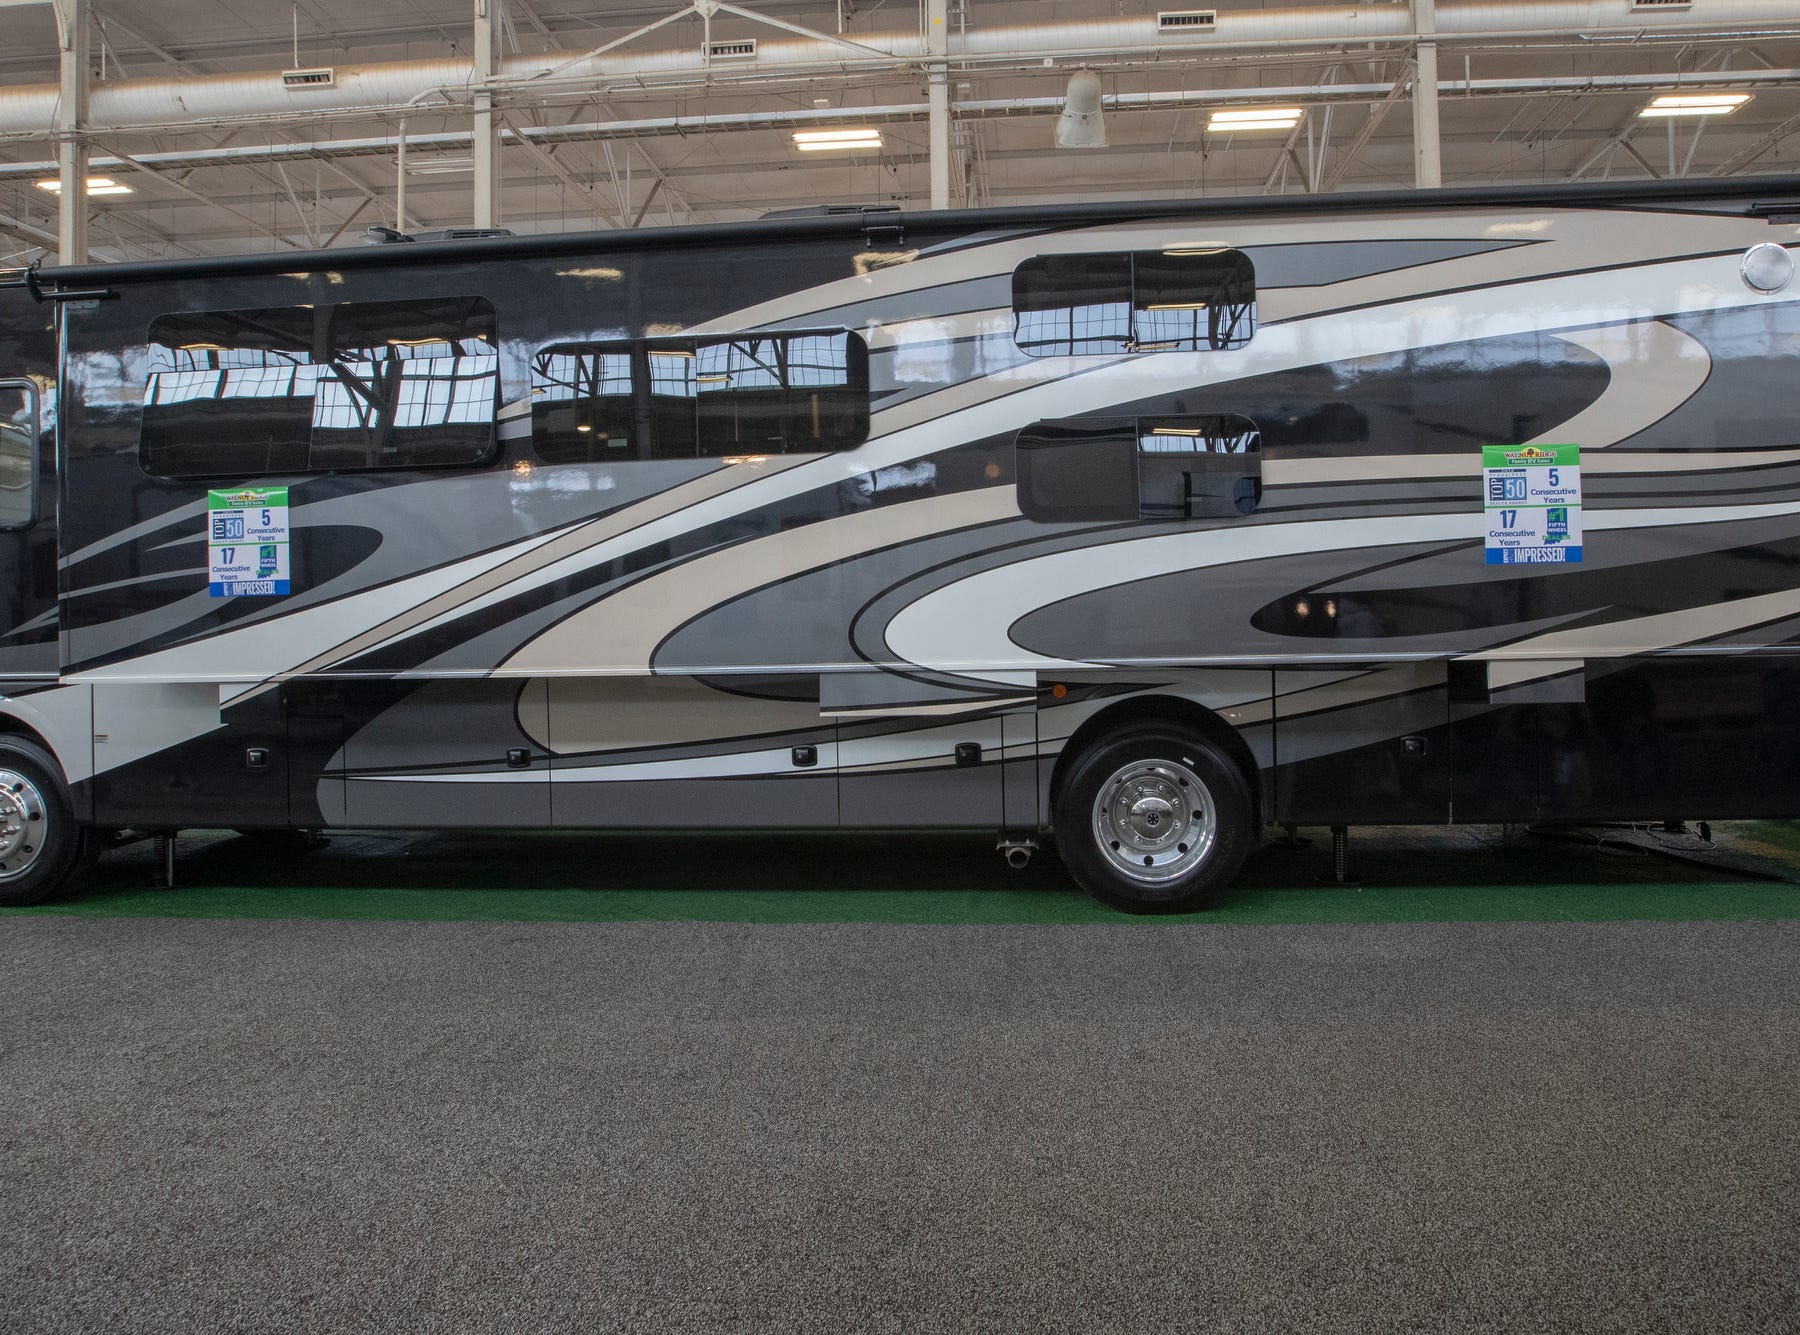 A 2019 Bounder 36F, one of the more expensive units at the Indy RV Expo, Indiana State Fairgrounds, Indianapolis, Sunday, January 6, 2019. The show runs through the 13th.